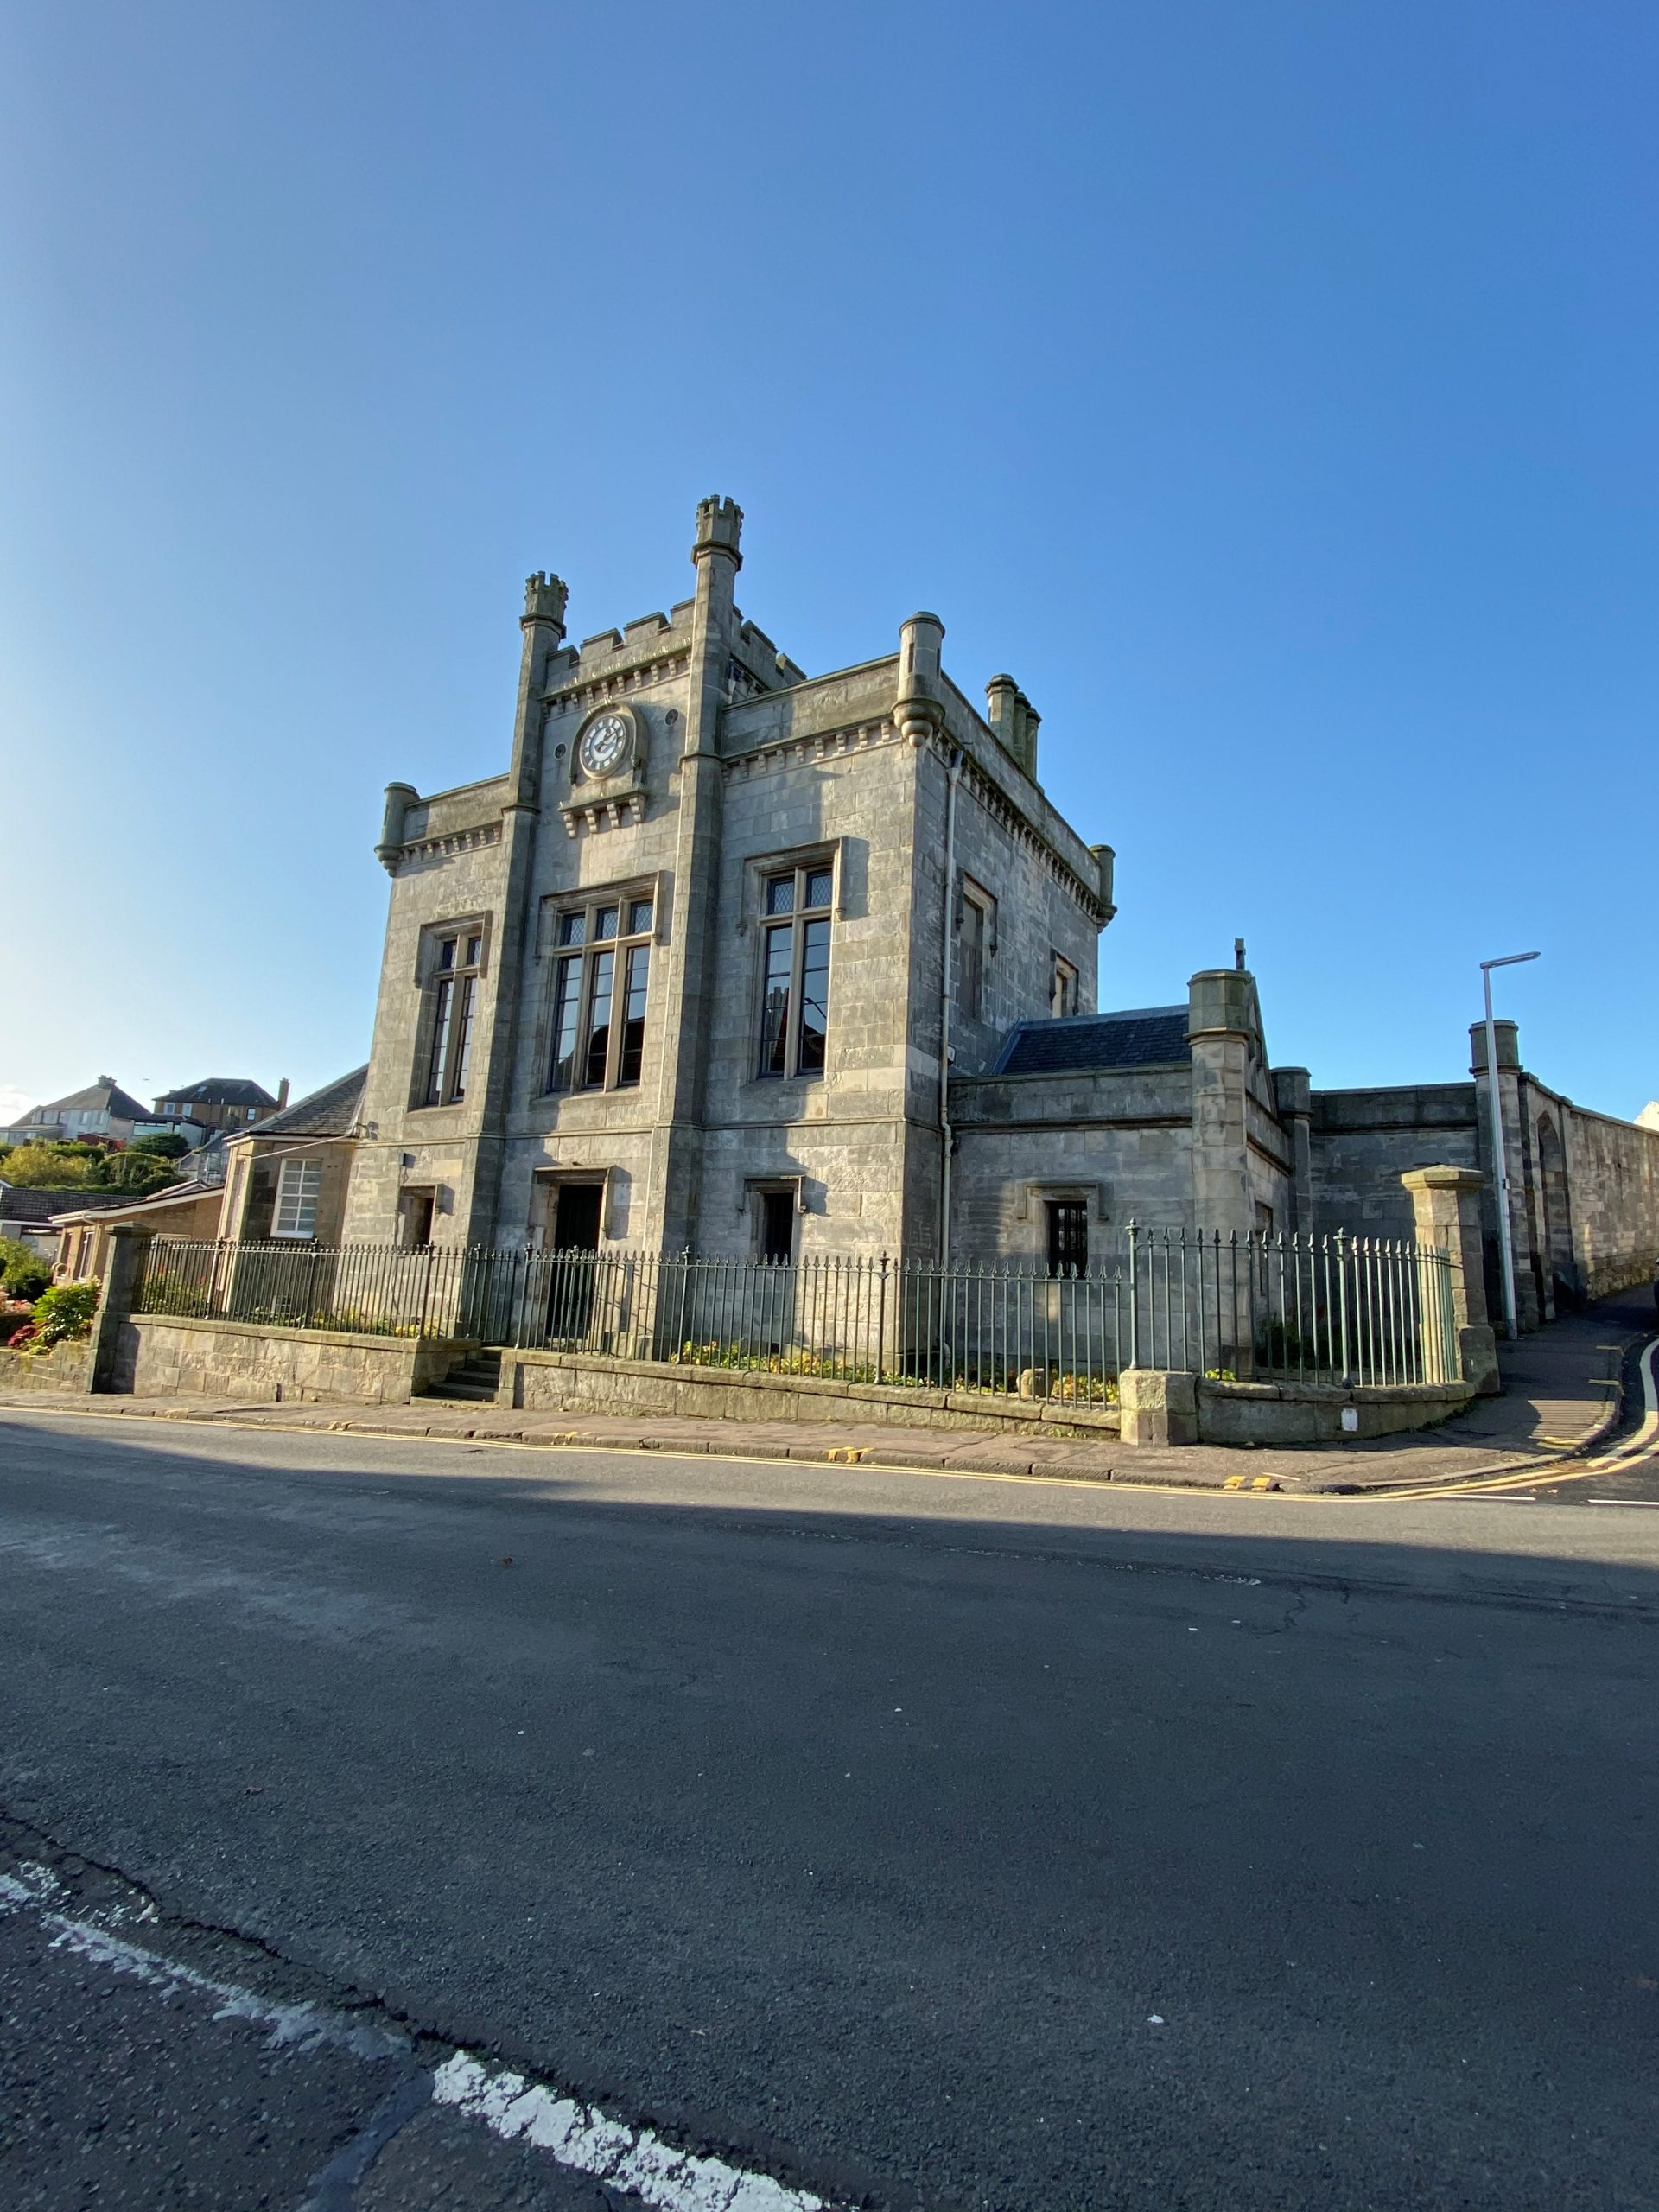 Exterior of Kinghorn Town Hall on a Sunny Day